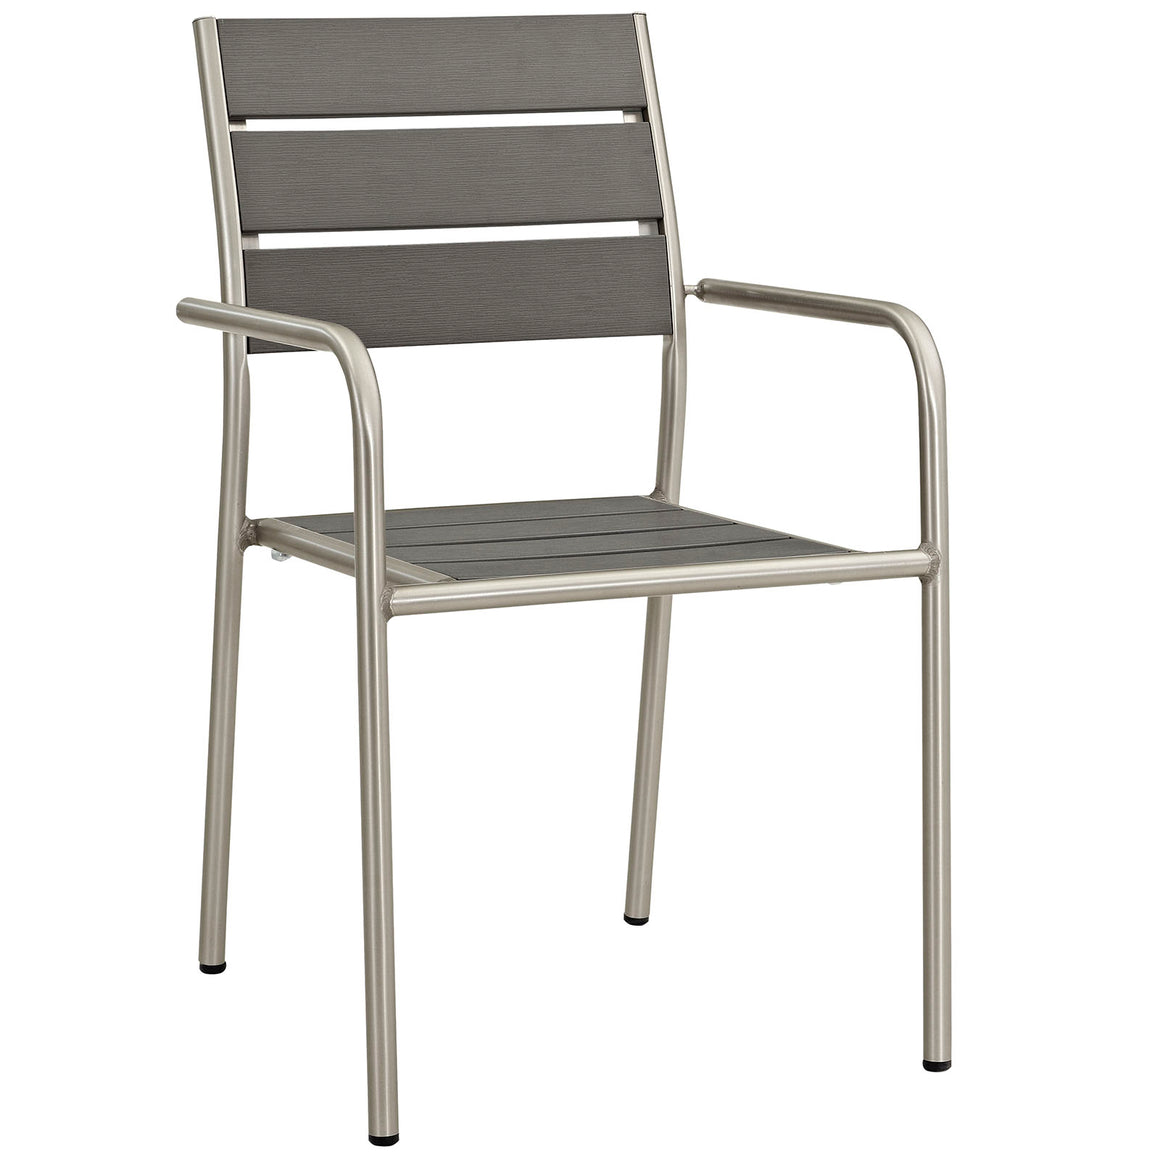 SHORE OUTDOOR PATIO ALUMINUM DINING ROUNDED ARMCHAIR IN SILVER GRAY